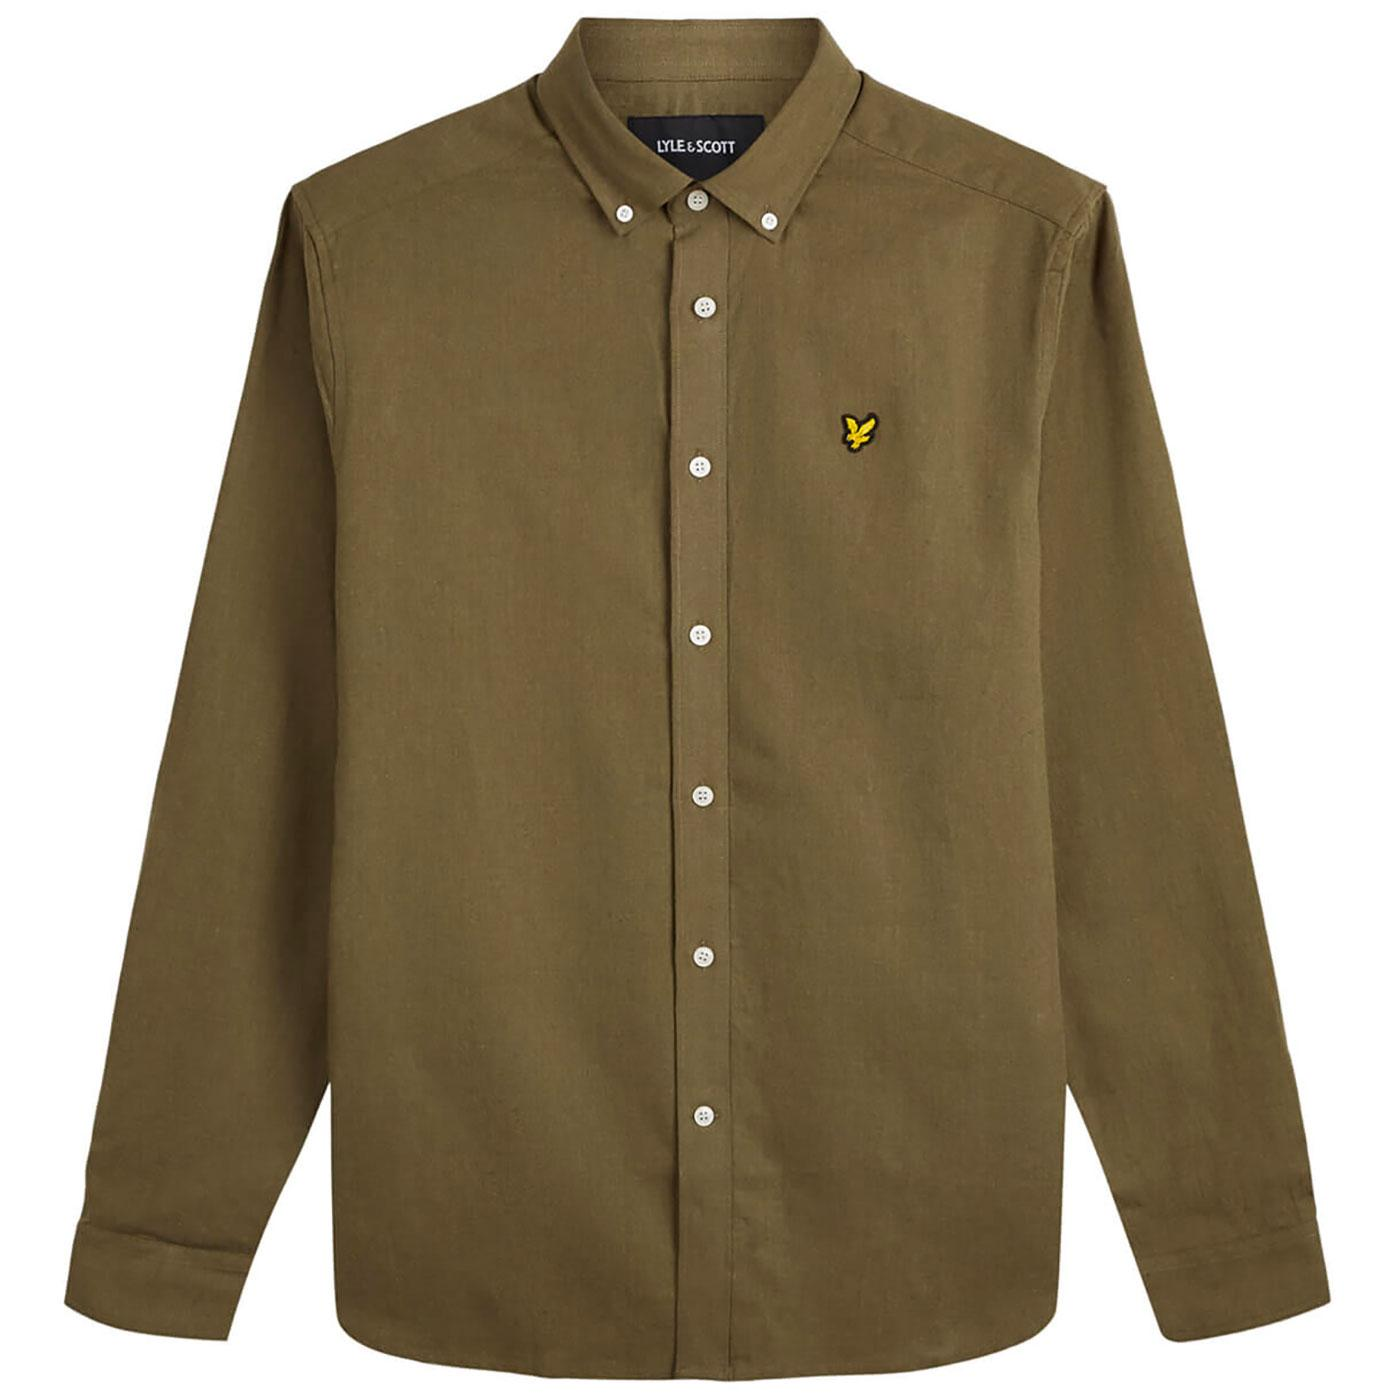 LYLE AND SCOTT 60s Mod BD Cotton Linen Shirt (LG)